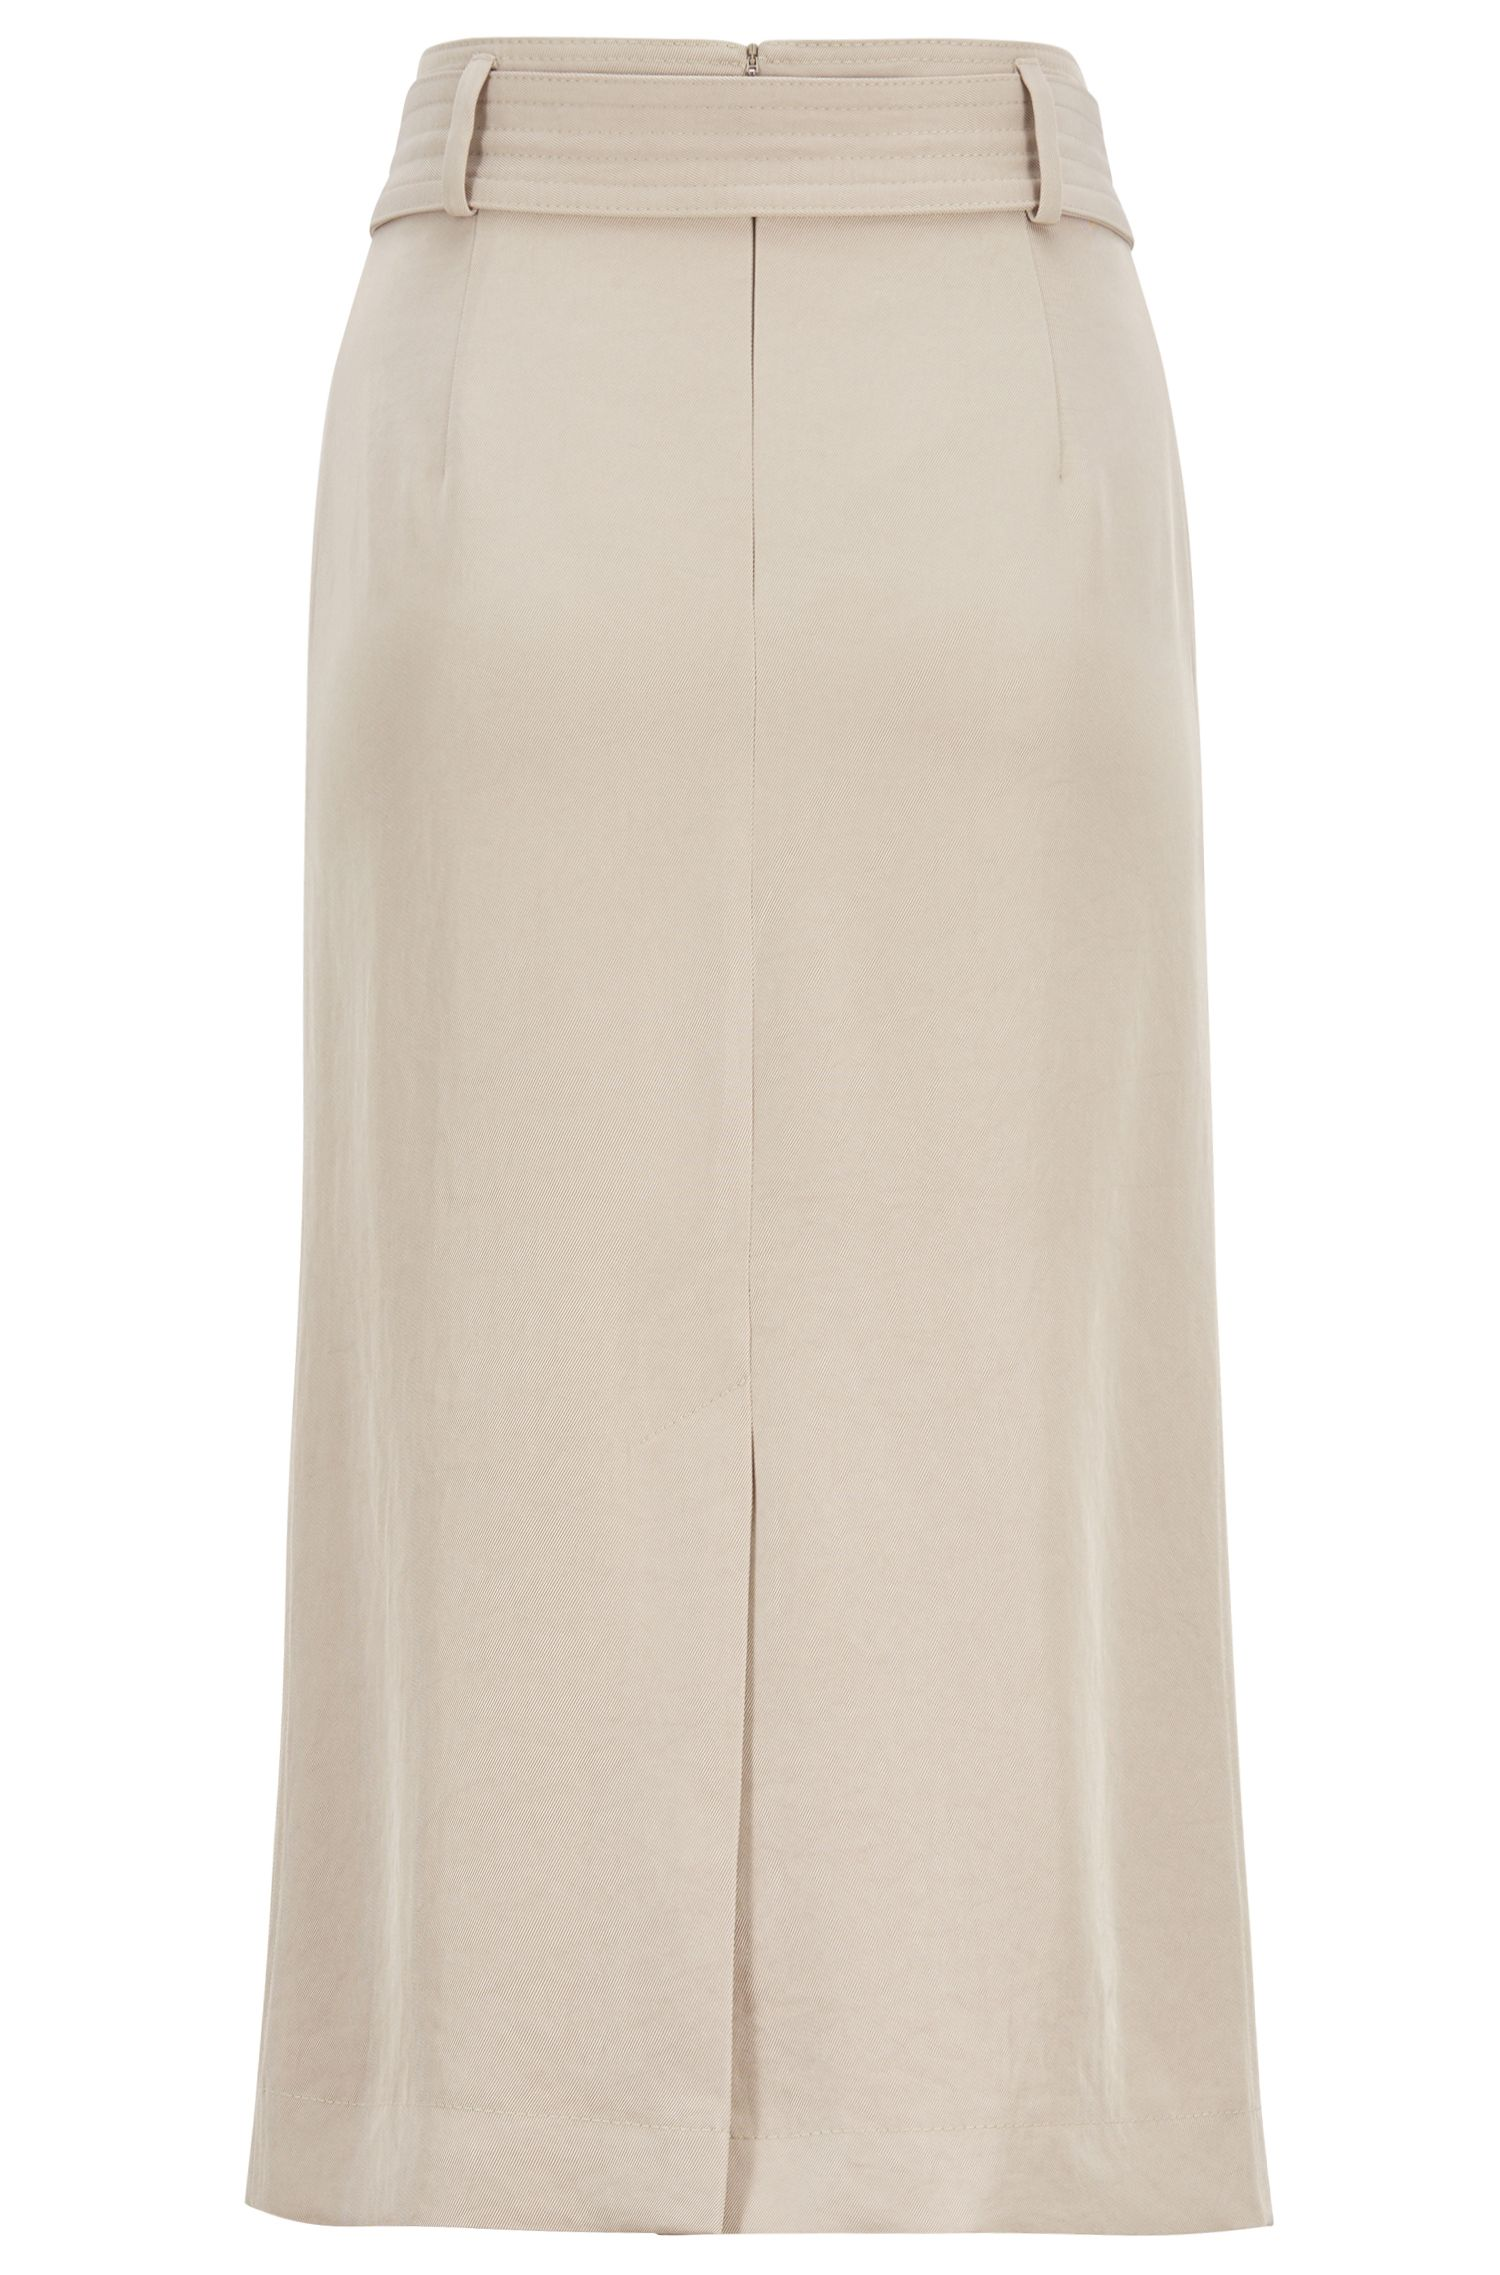 Slim-fit skirt in Japanese twill with statement belt, Beige